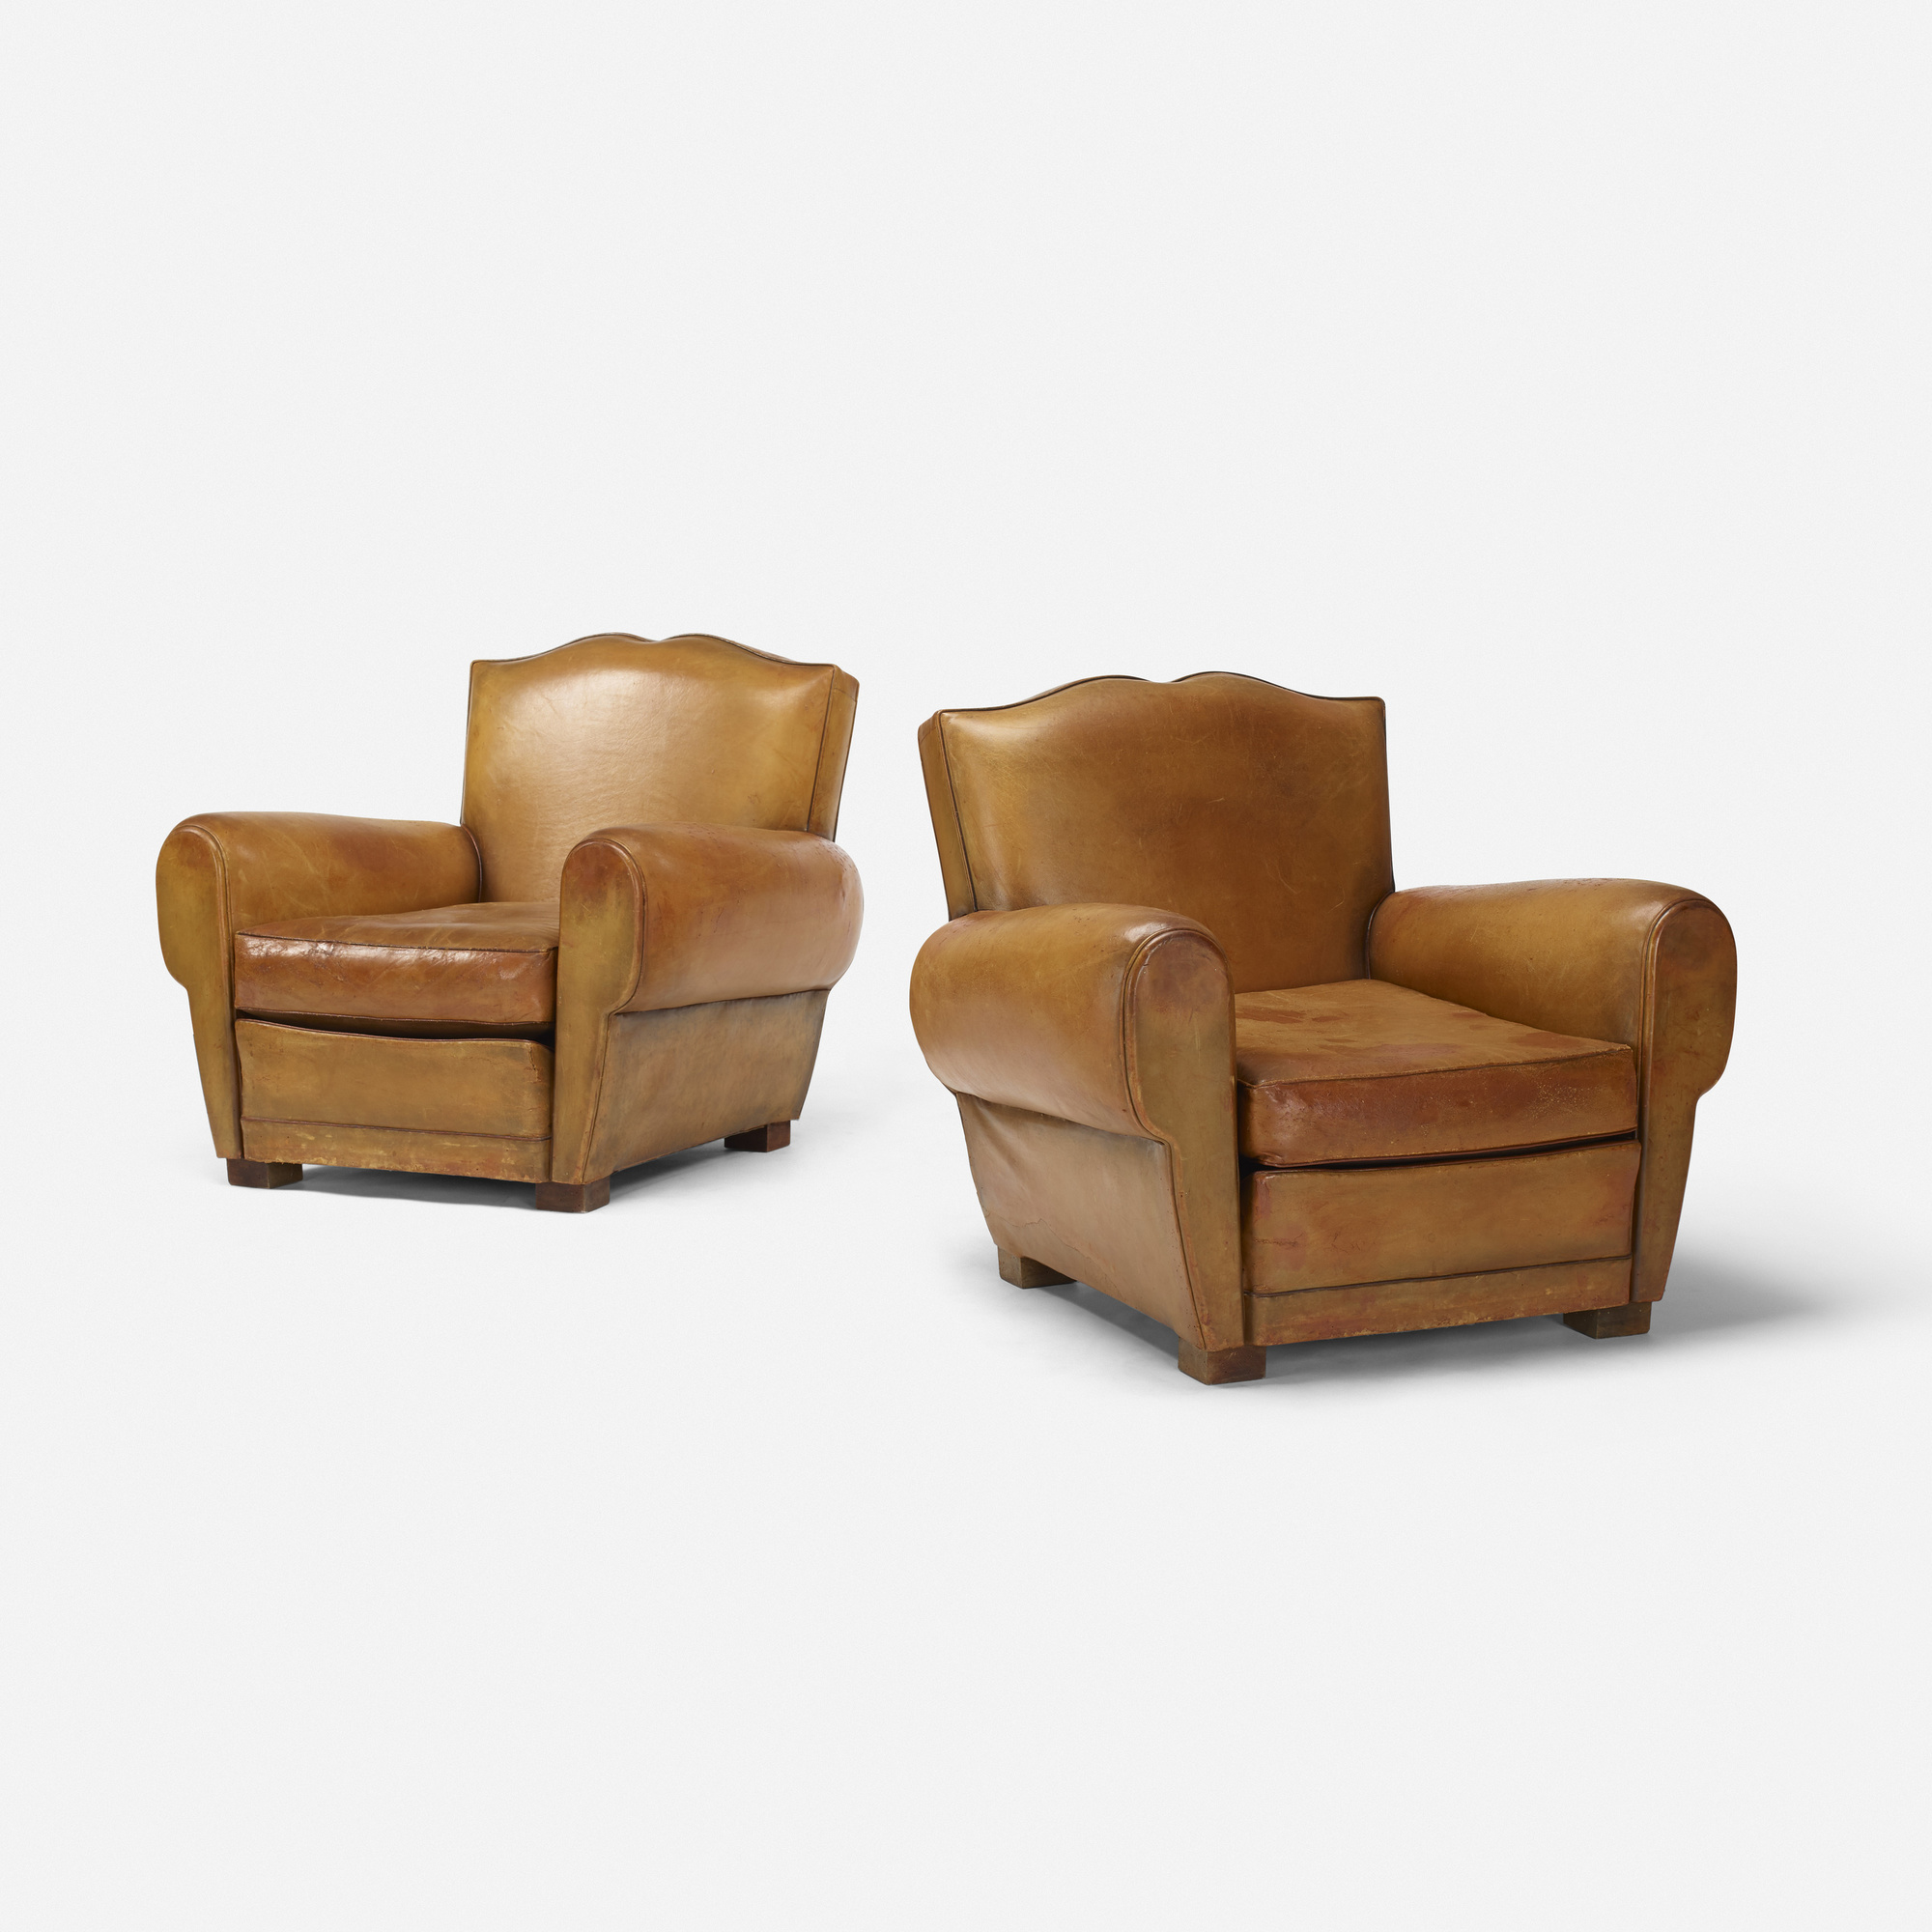 215: French / Club Chairs, Pair (1 Of 4)